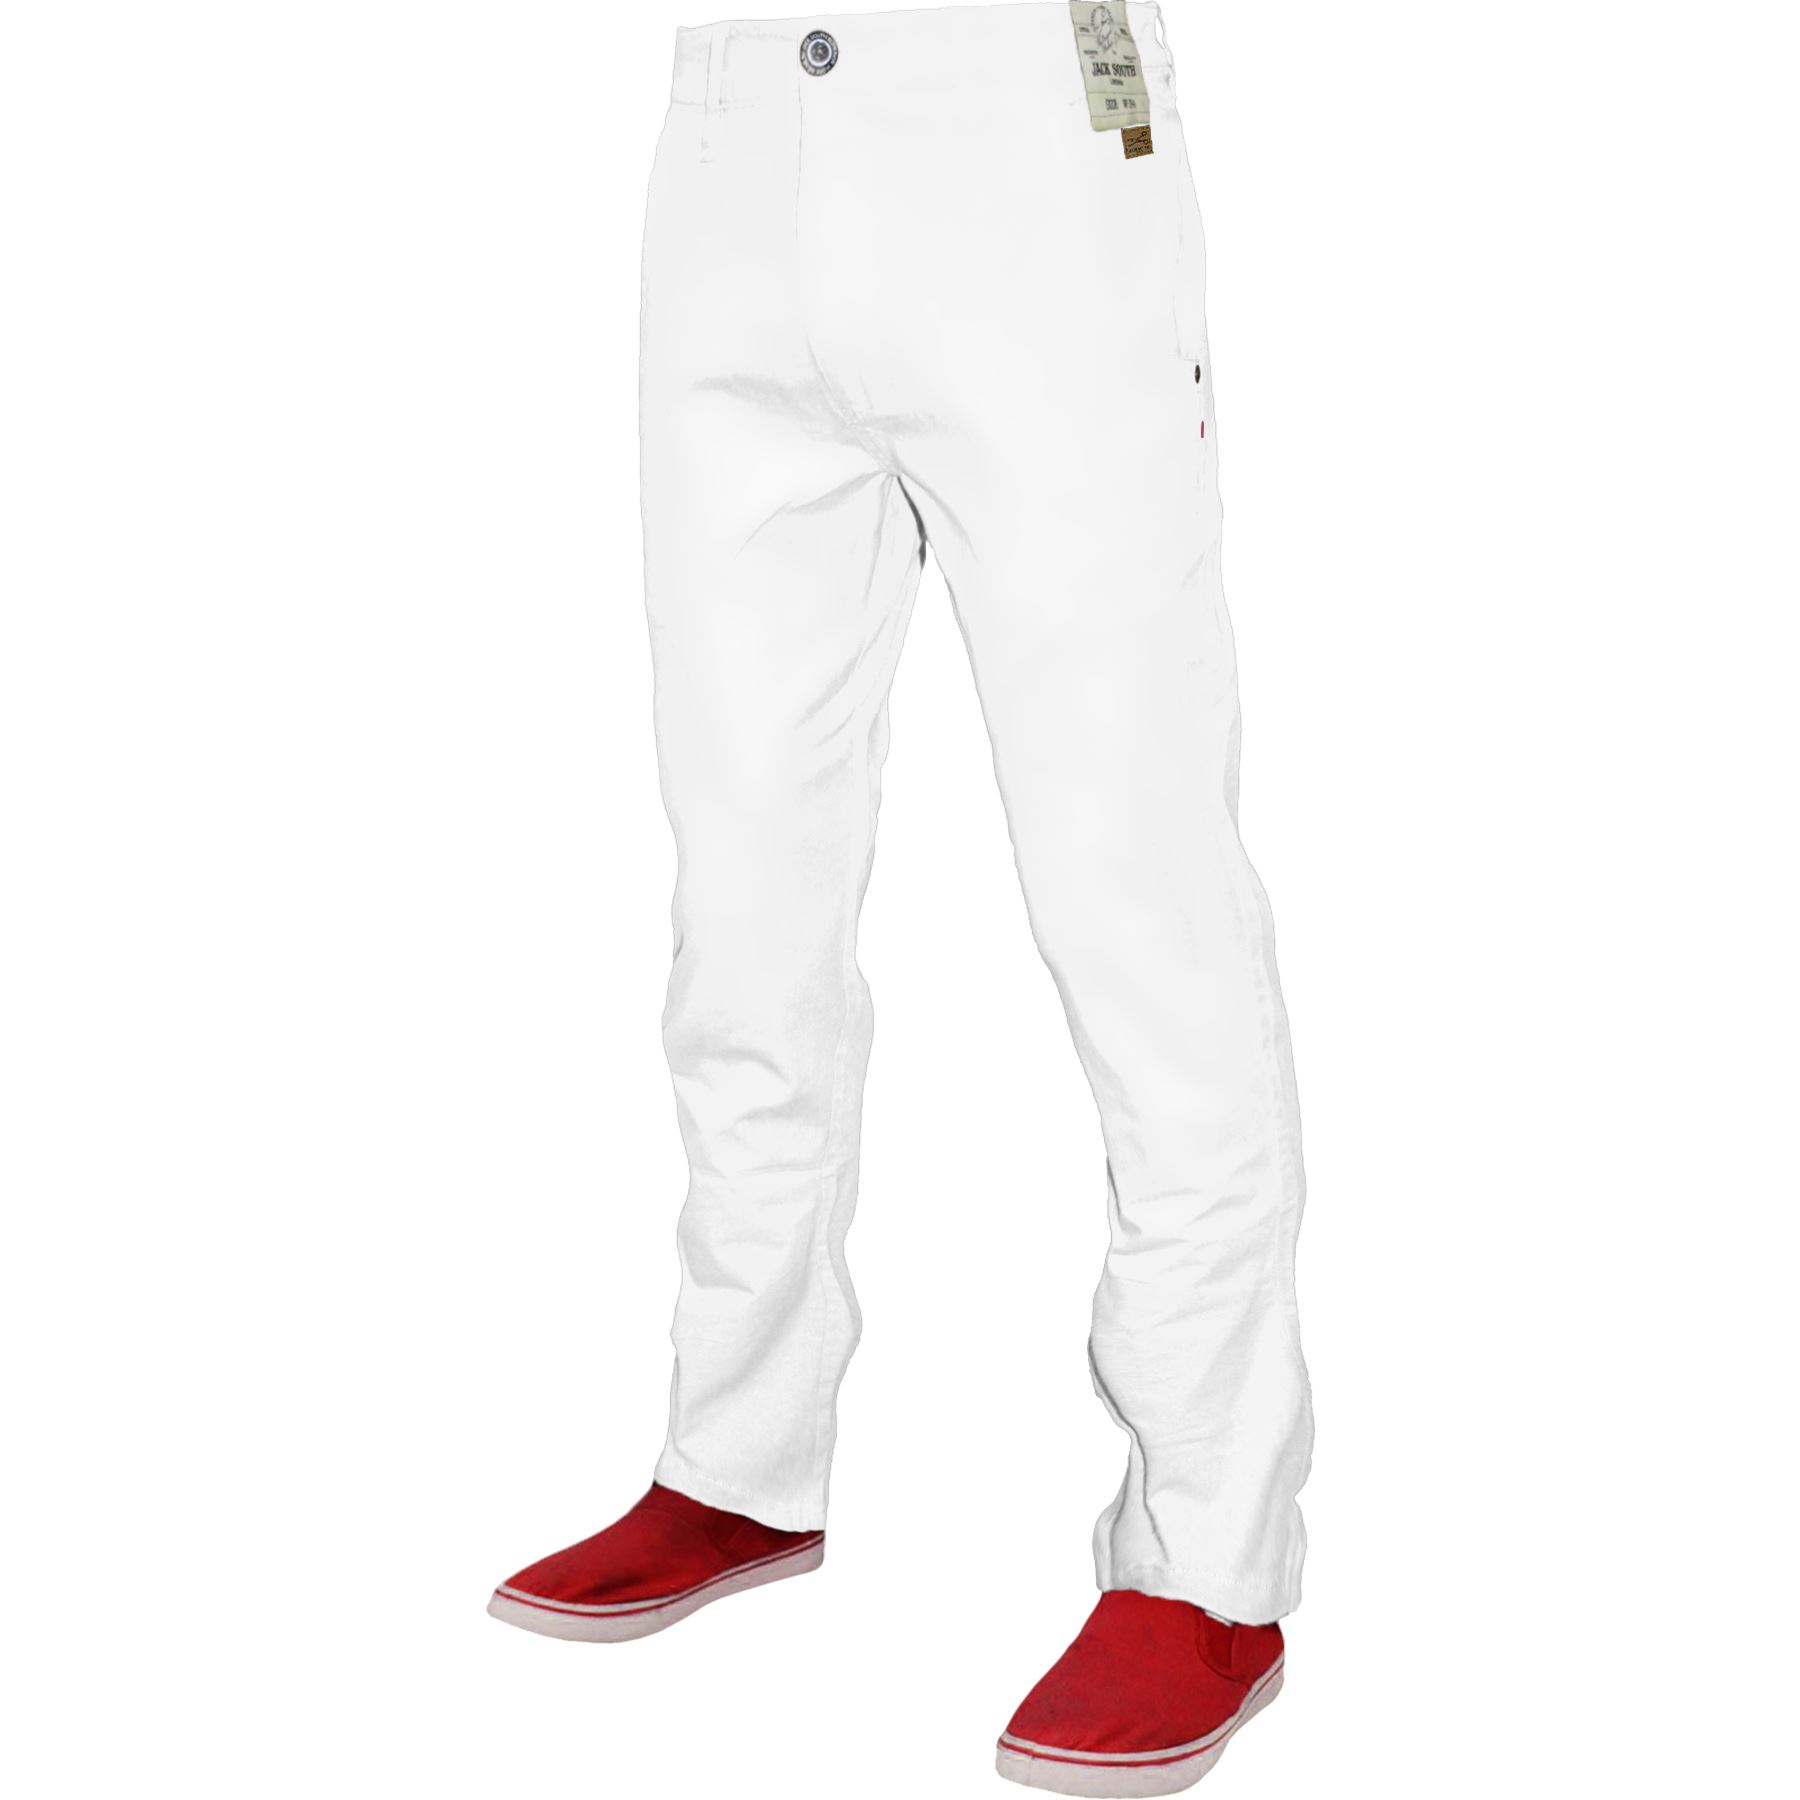 Mens-Chino-Classic-Regular-Fit-Trouser-Casual-Stretch-Spandex-Pants-Size-32-40 thumbnail 30